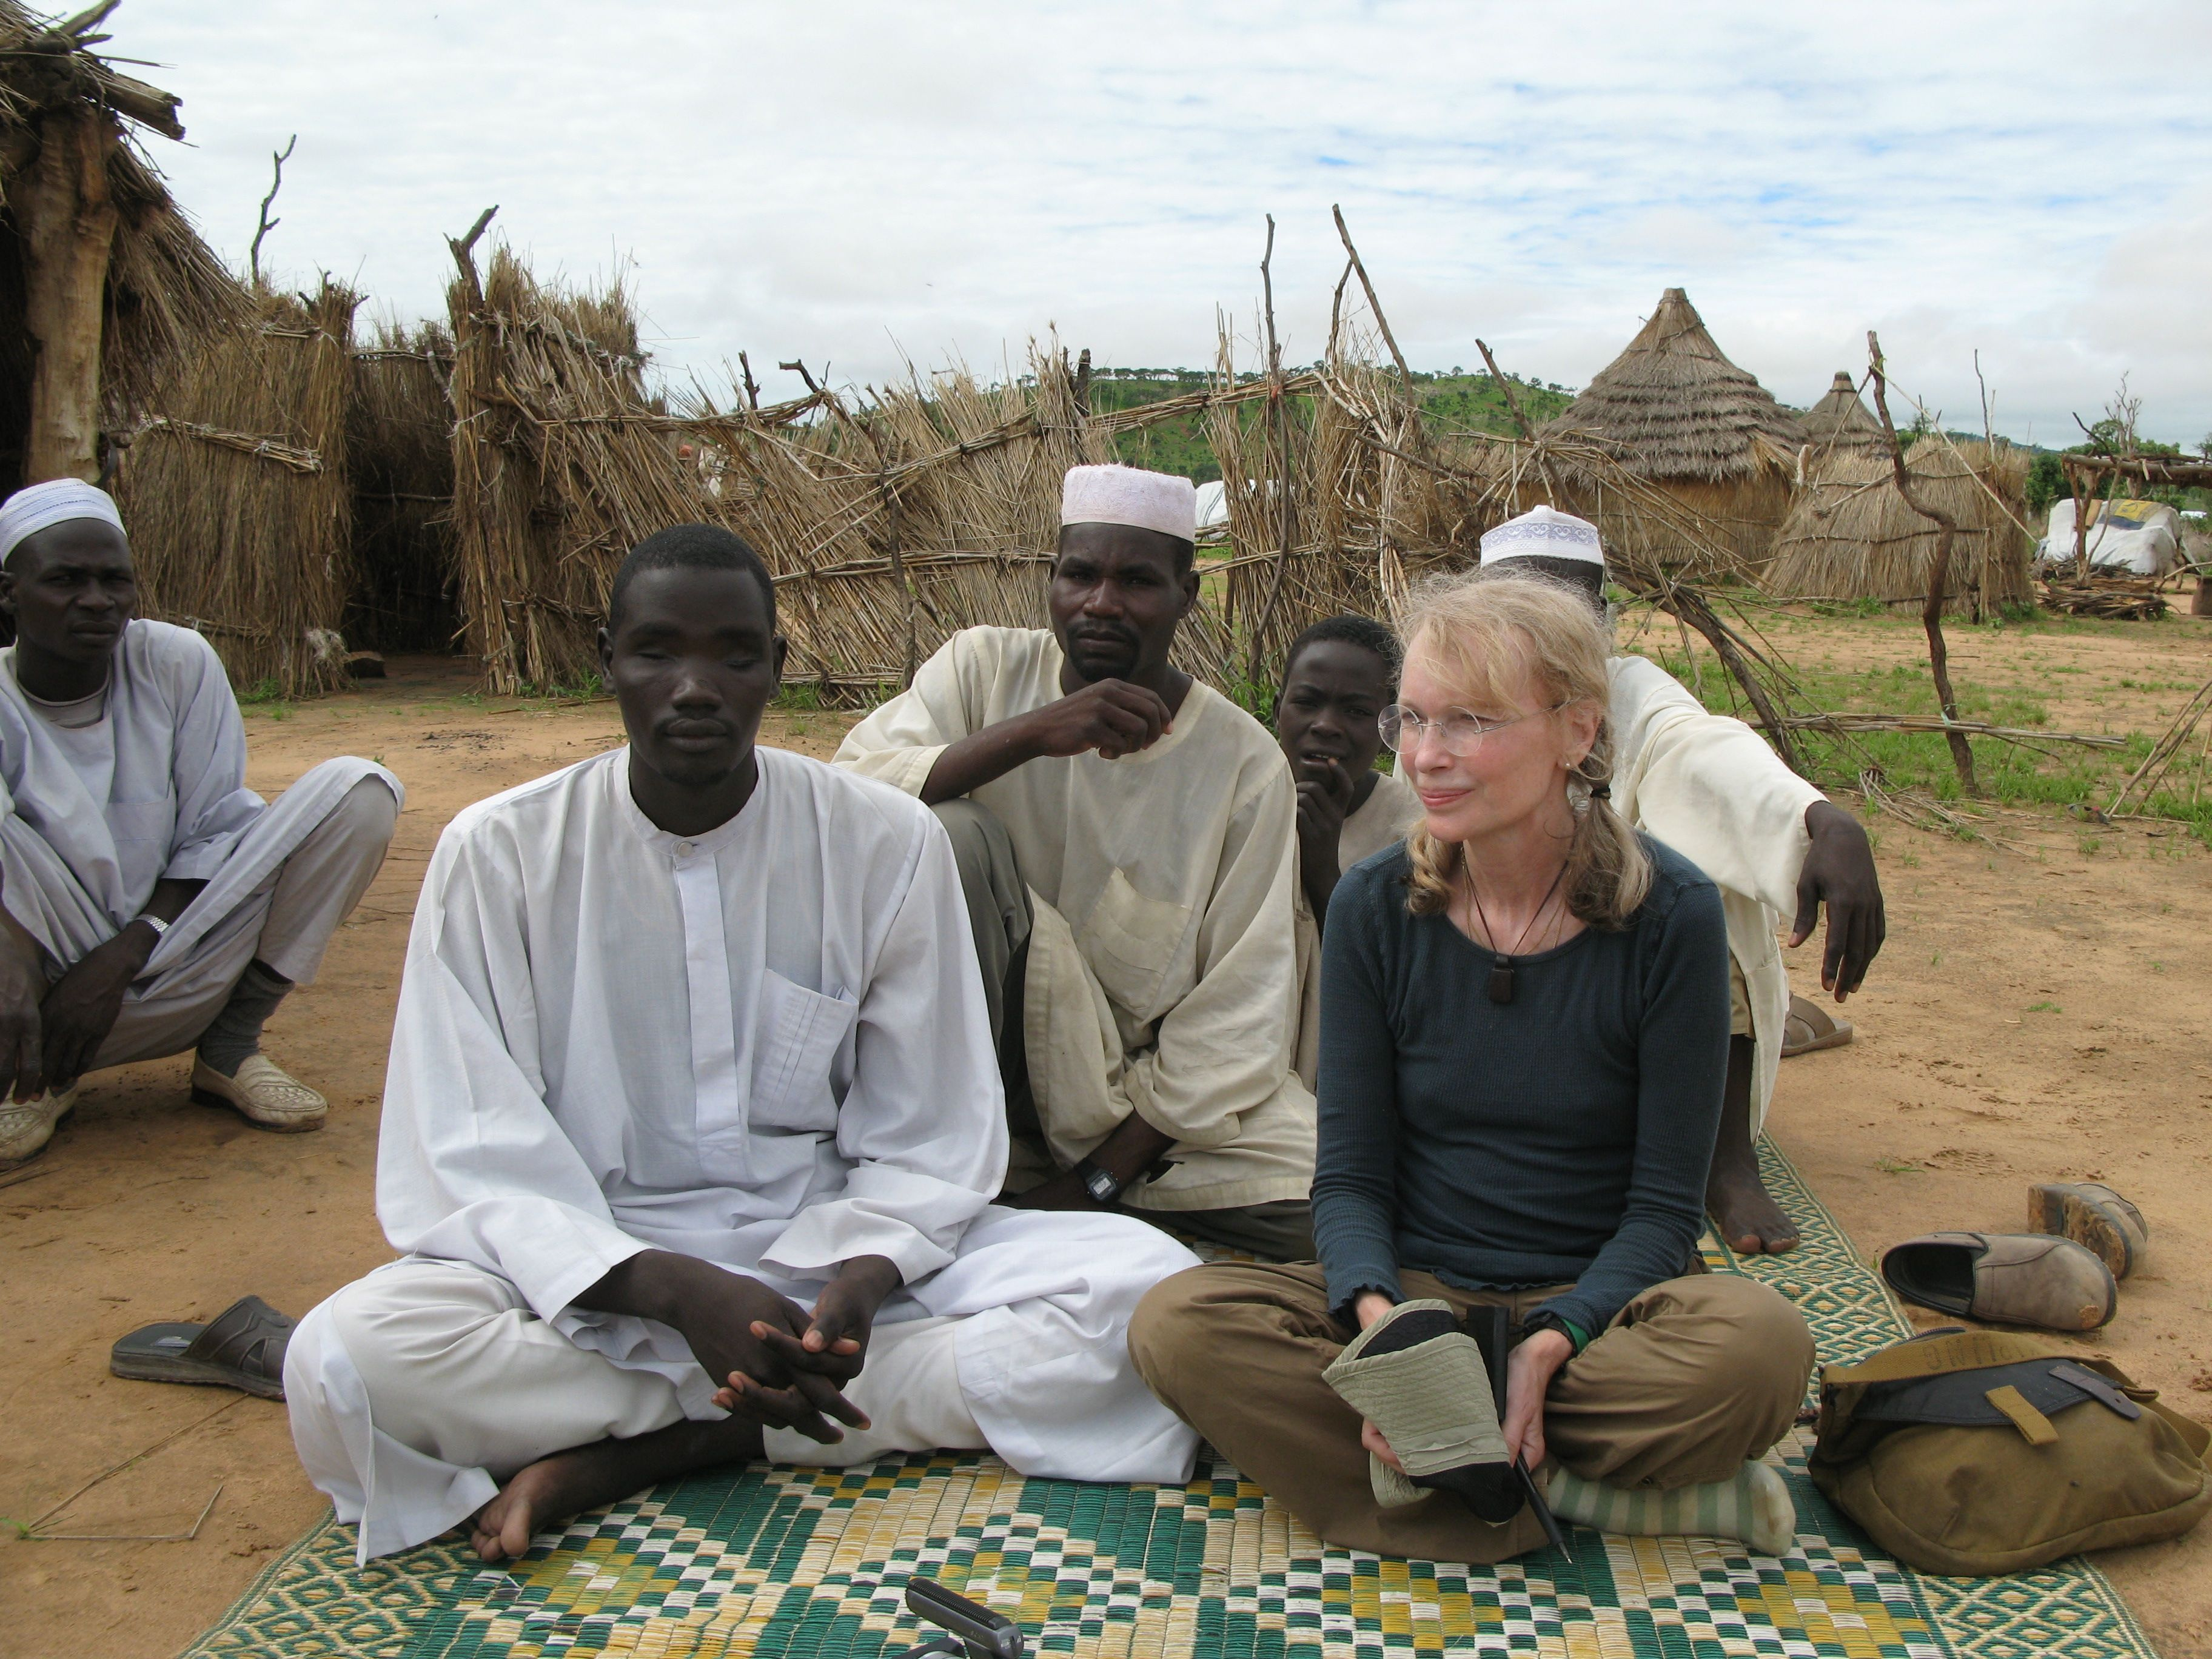 Actor and humanitarian Mia Farrow sits with Darfuri men at the Gouroukoum camp.